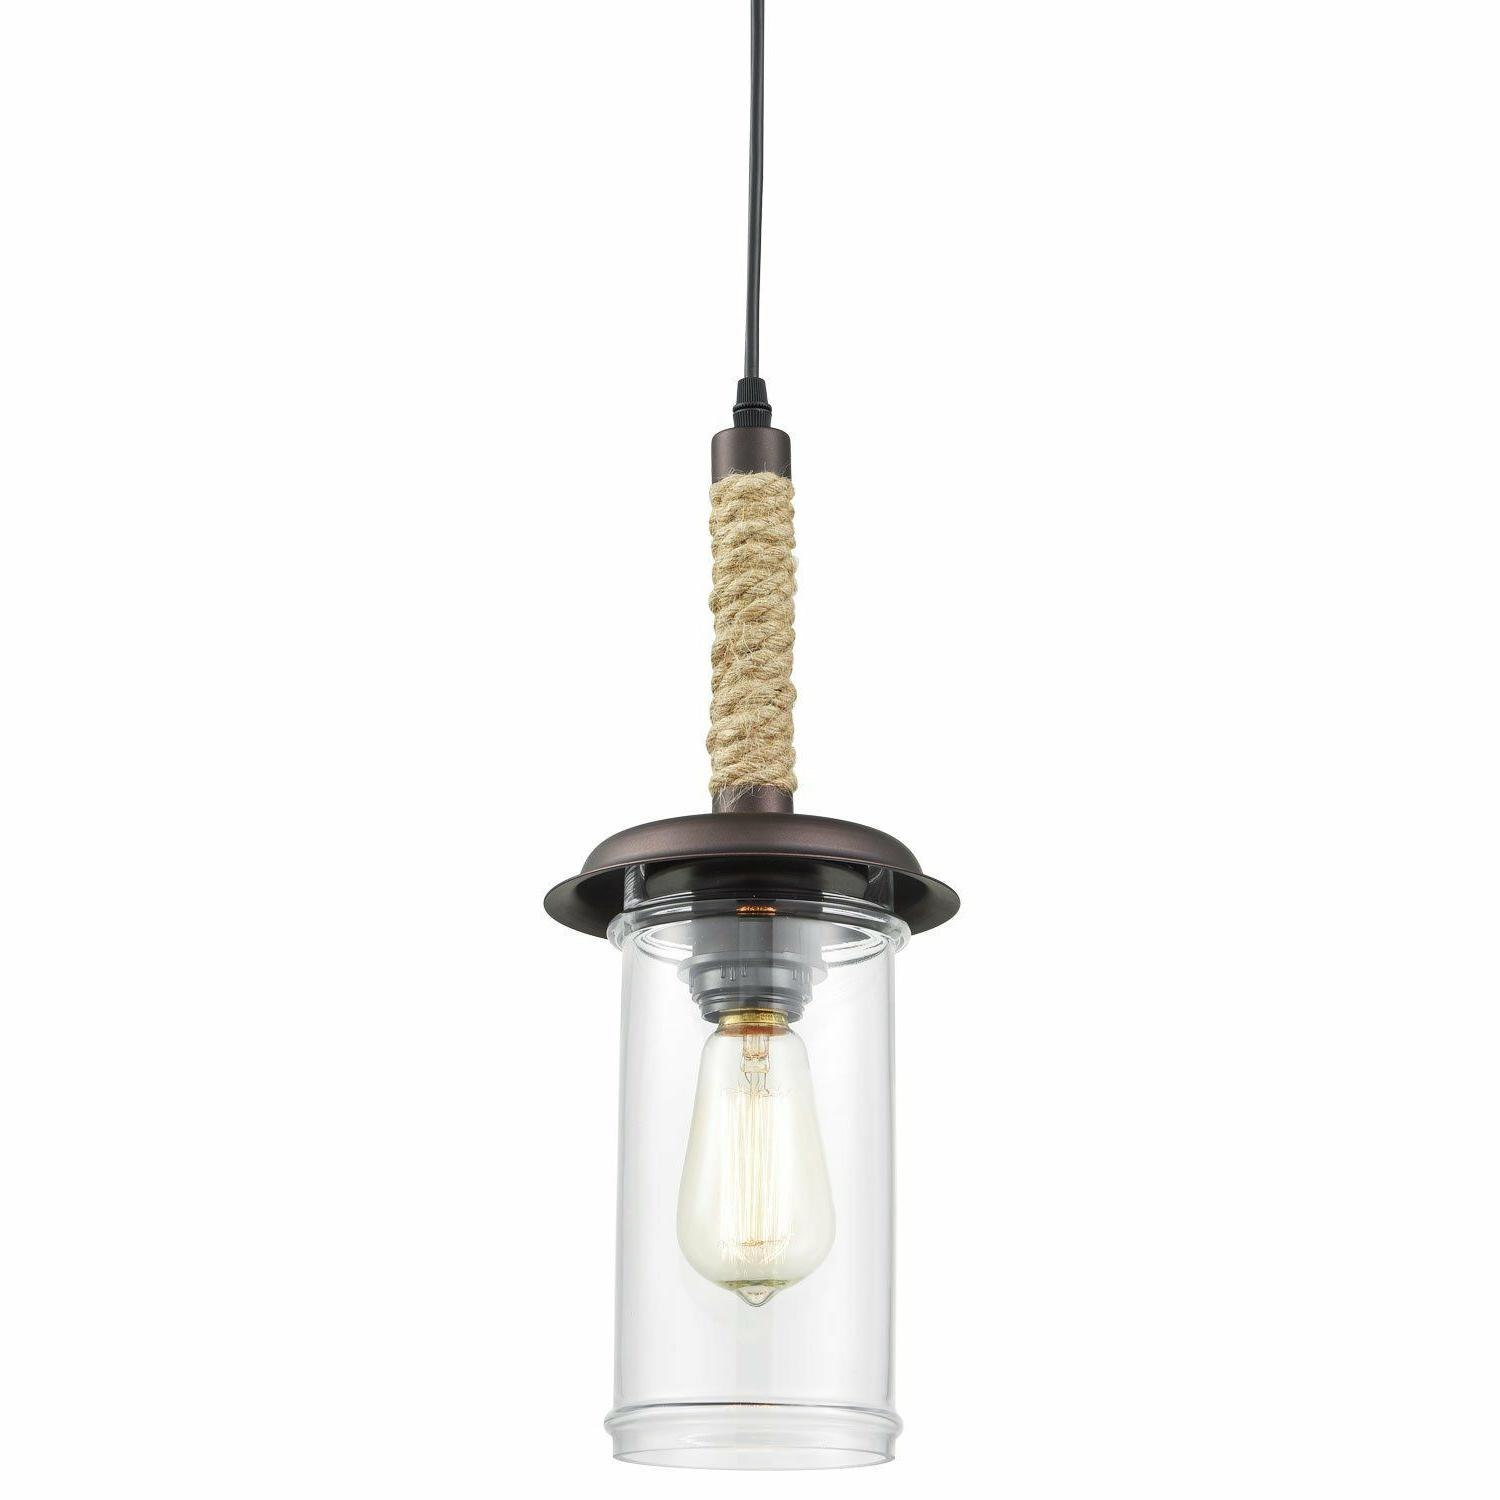 YOBO Lighting Vintage Glass Pendant Light with Hemp Rope YB-